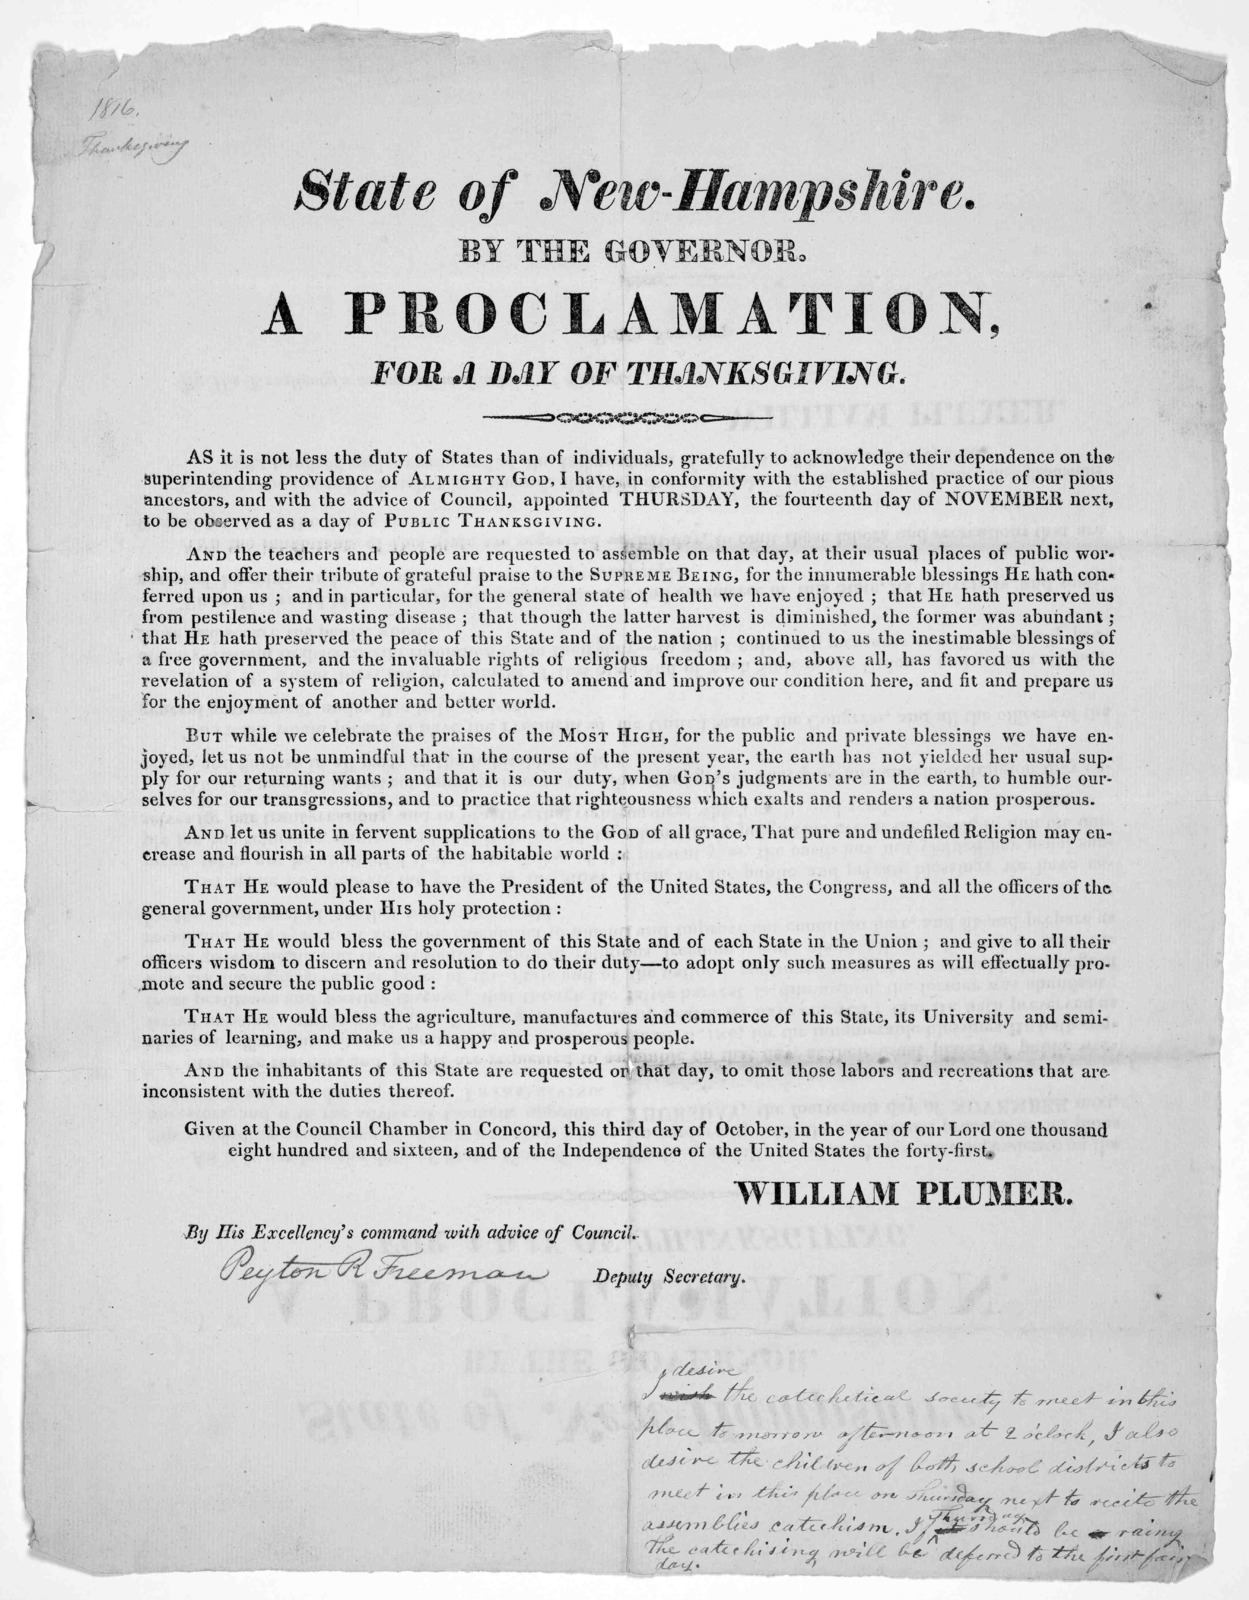 State of New-Hampshire. By the Governor. A proclamation for a day of thanksgiving ... appointed Thursday, the fourteenth day of November next, to be observed as a day of public thanksgiving ... Given at the Council Chamber in Concord, this third